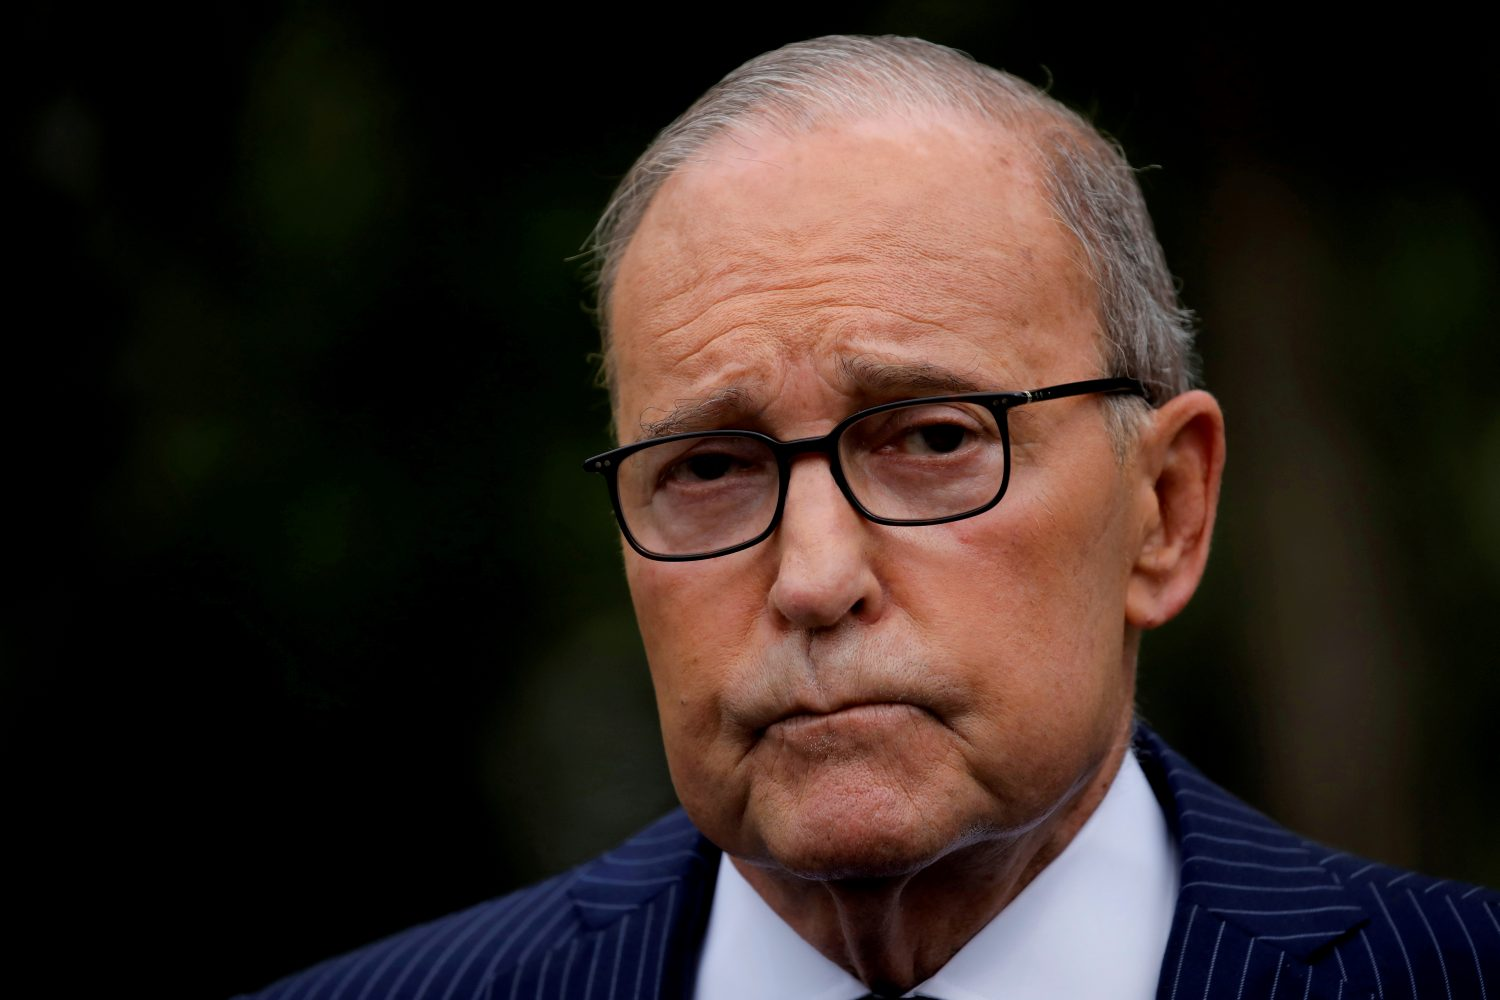 FILE PHOTO: White House chief economic adviser Larry Kudlow talks with reporters on the driveway outside the West Wing of the White House in Washington, U.S. August 2, 2019. REUTERS/Carlos Barria